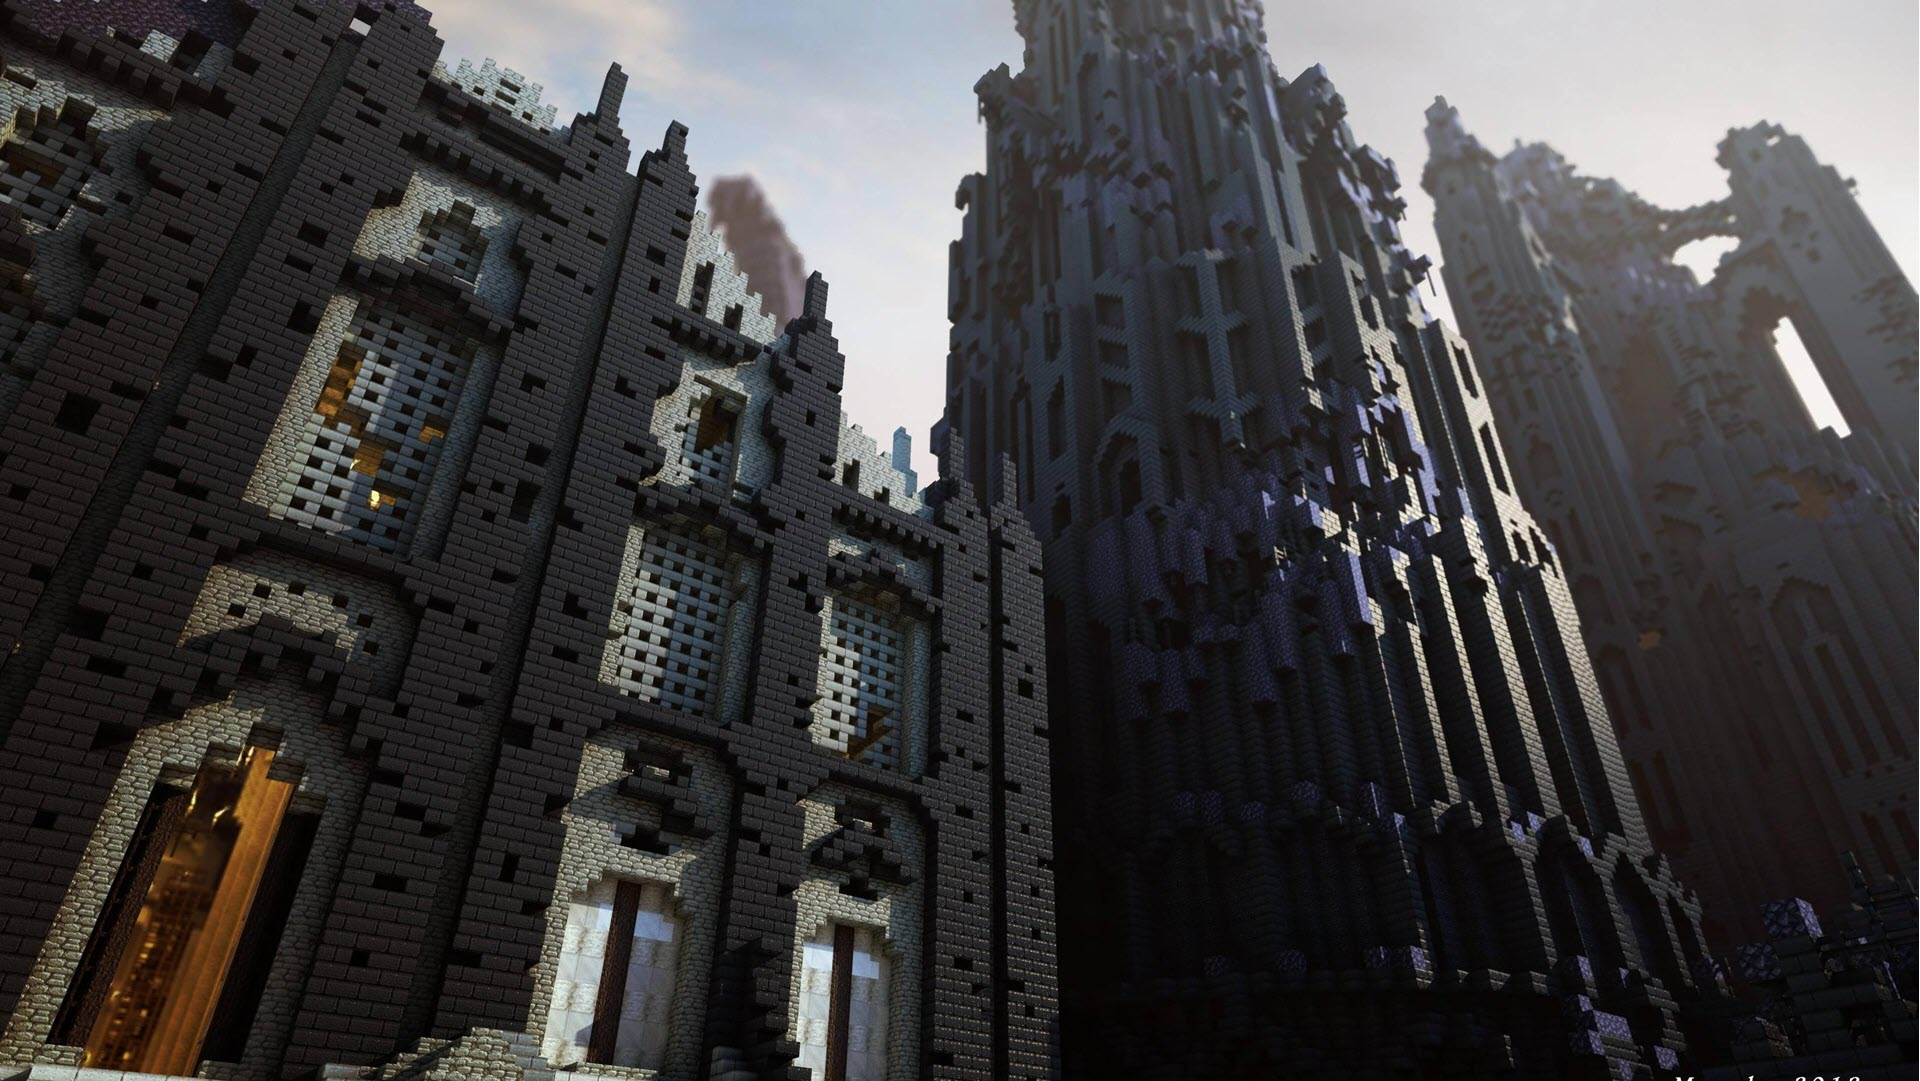 Minecraft Wallpaper castle